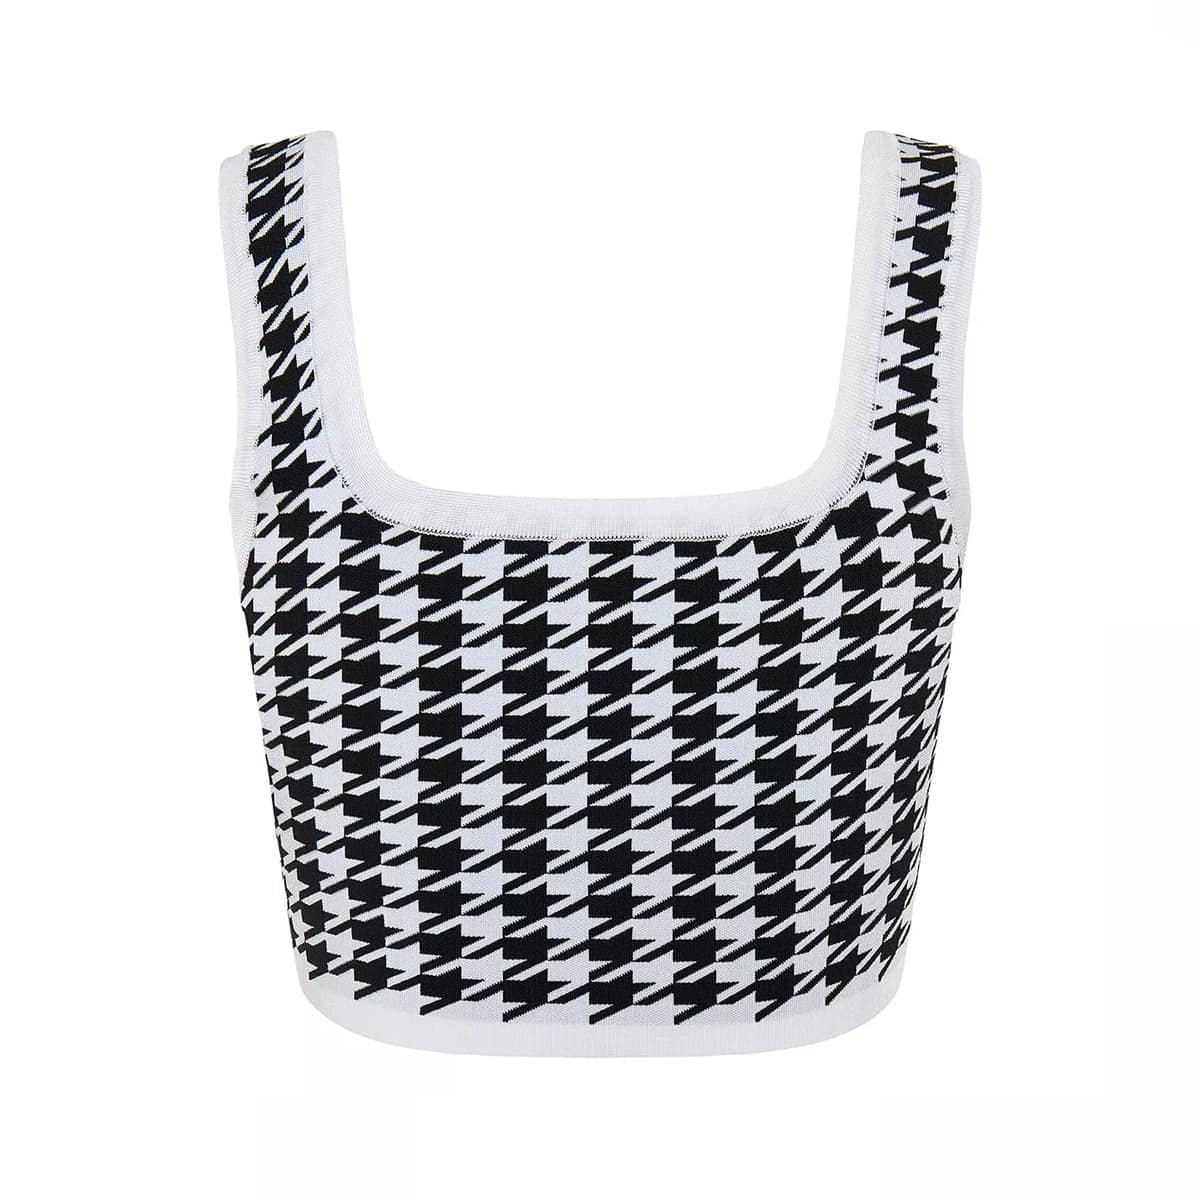 Houndstooth knit cropped top